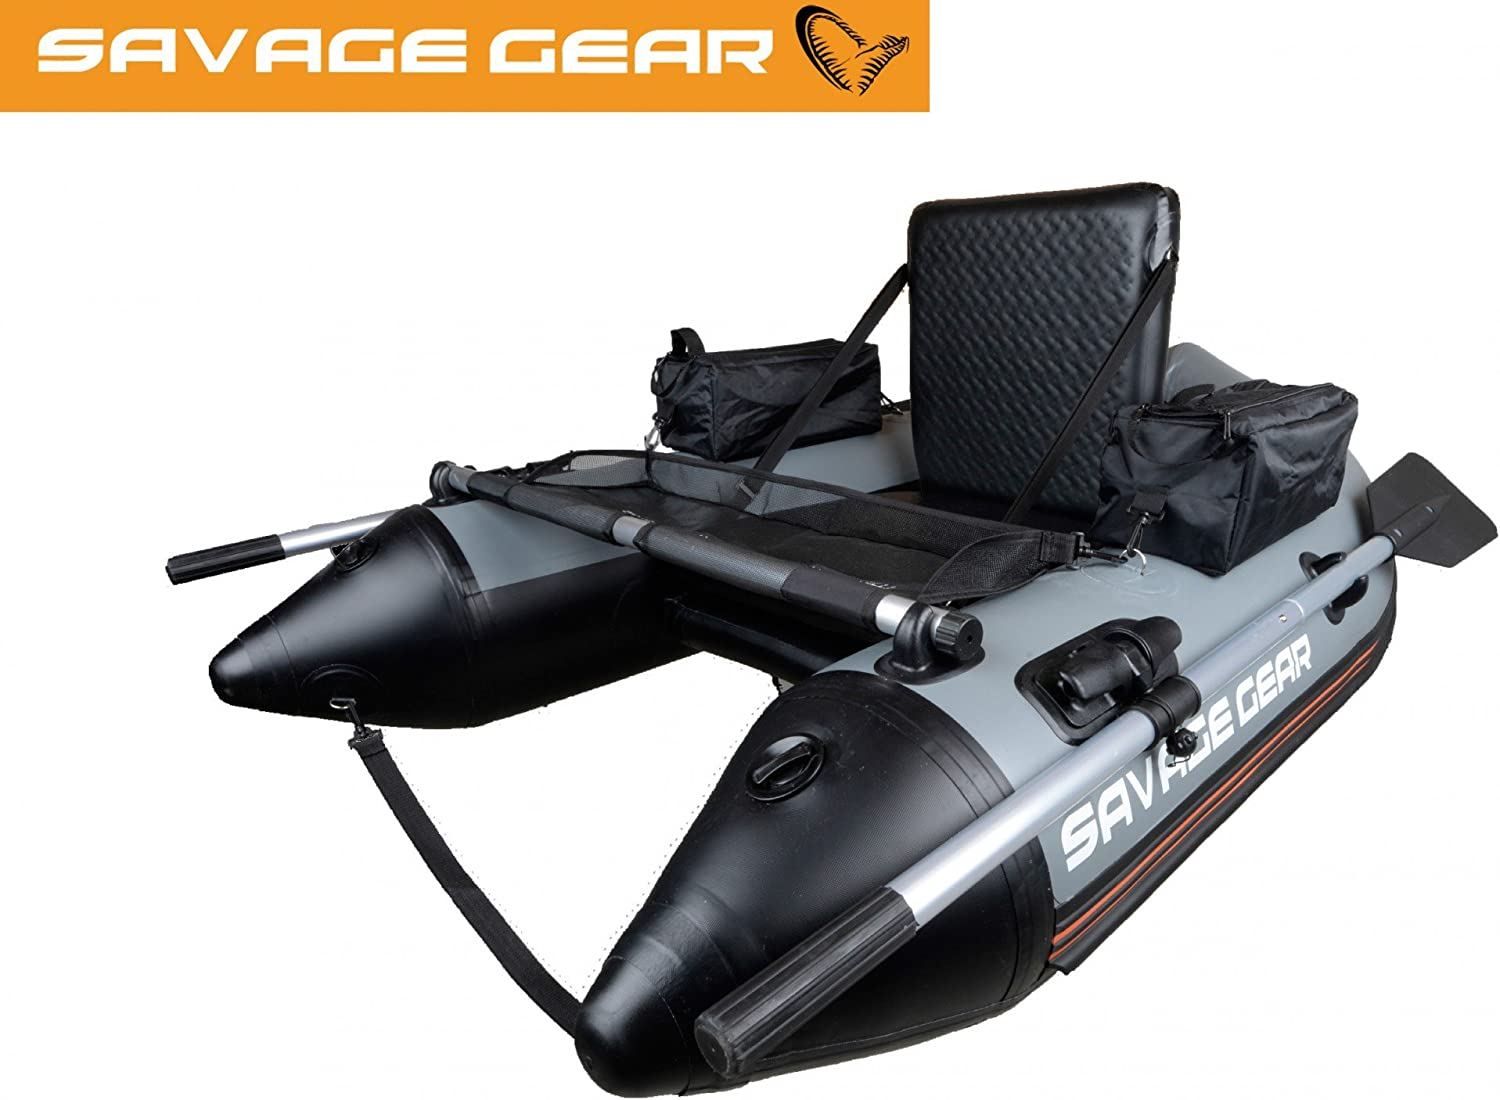 Savage Gear Highrider Kayak 330 Angelboot